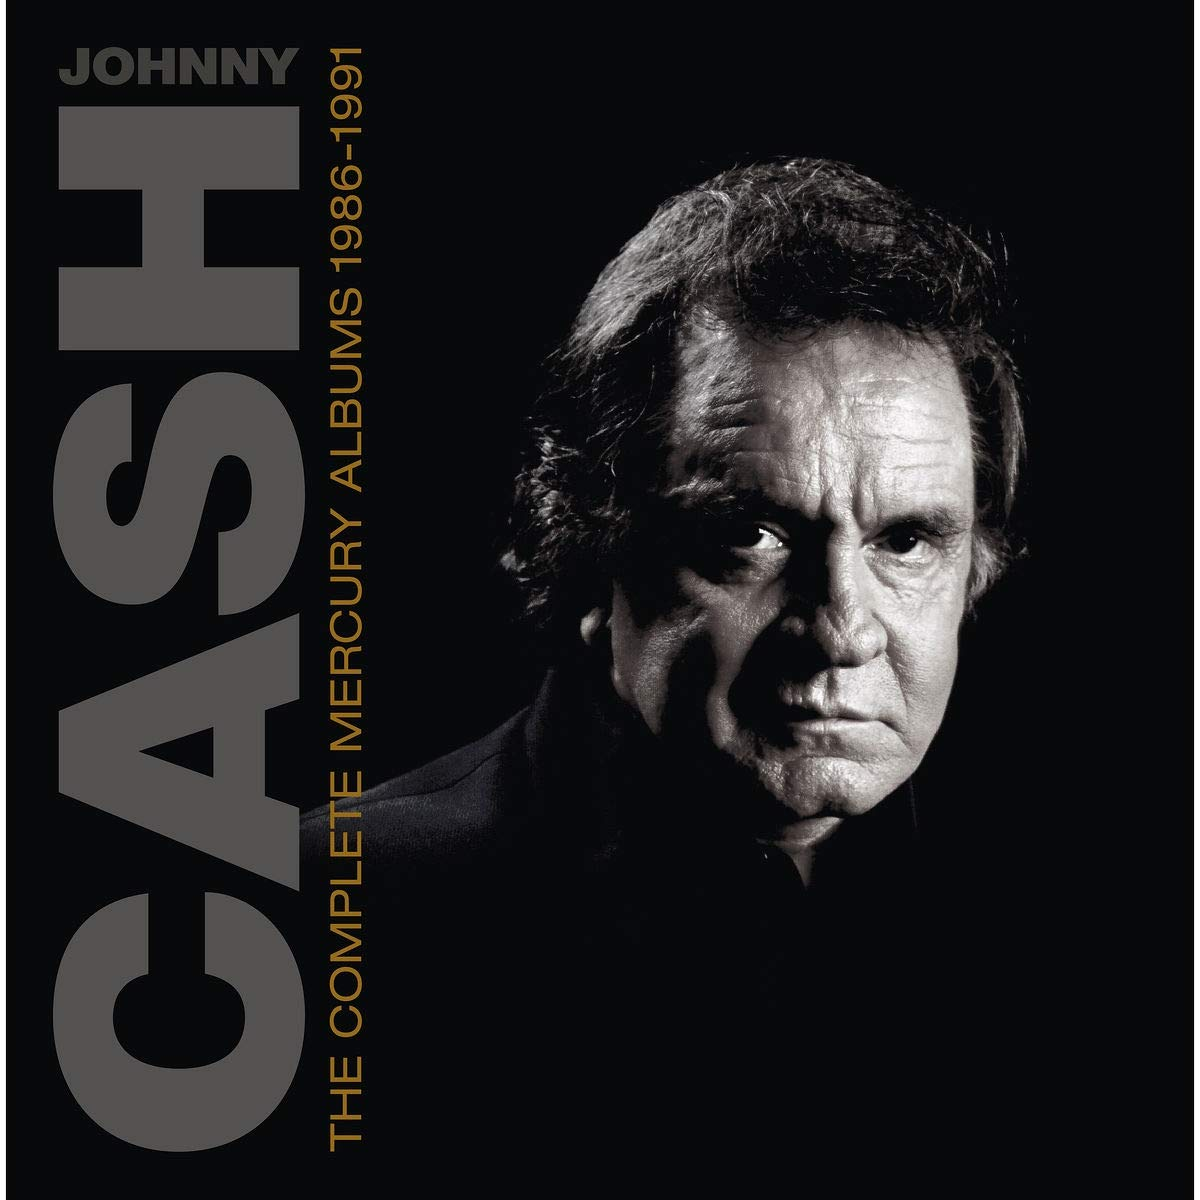 Johnny Cash – The Complete Mercury Recordings 1986-1991 (2020) [FLAC]